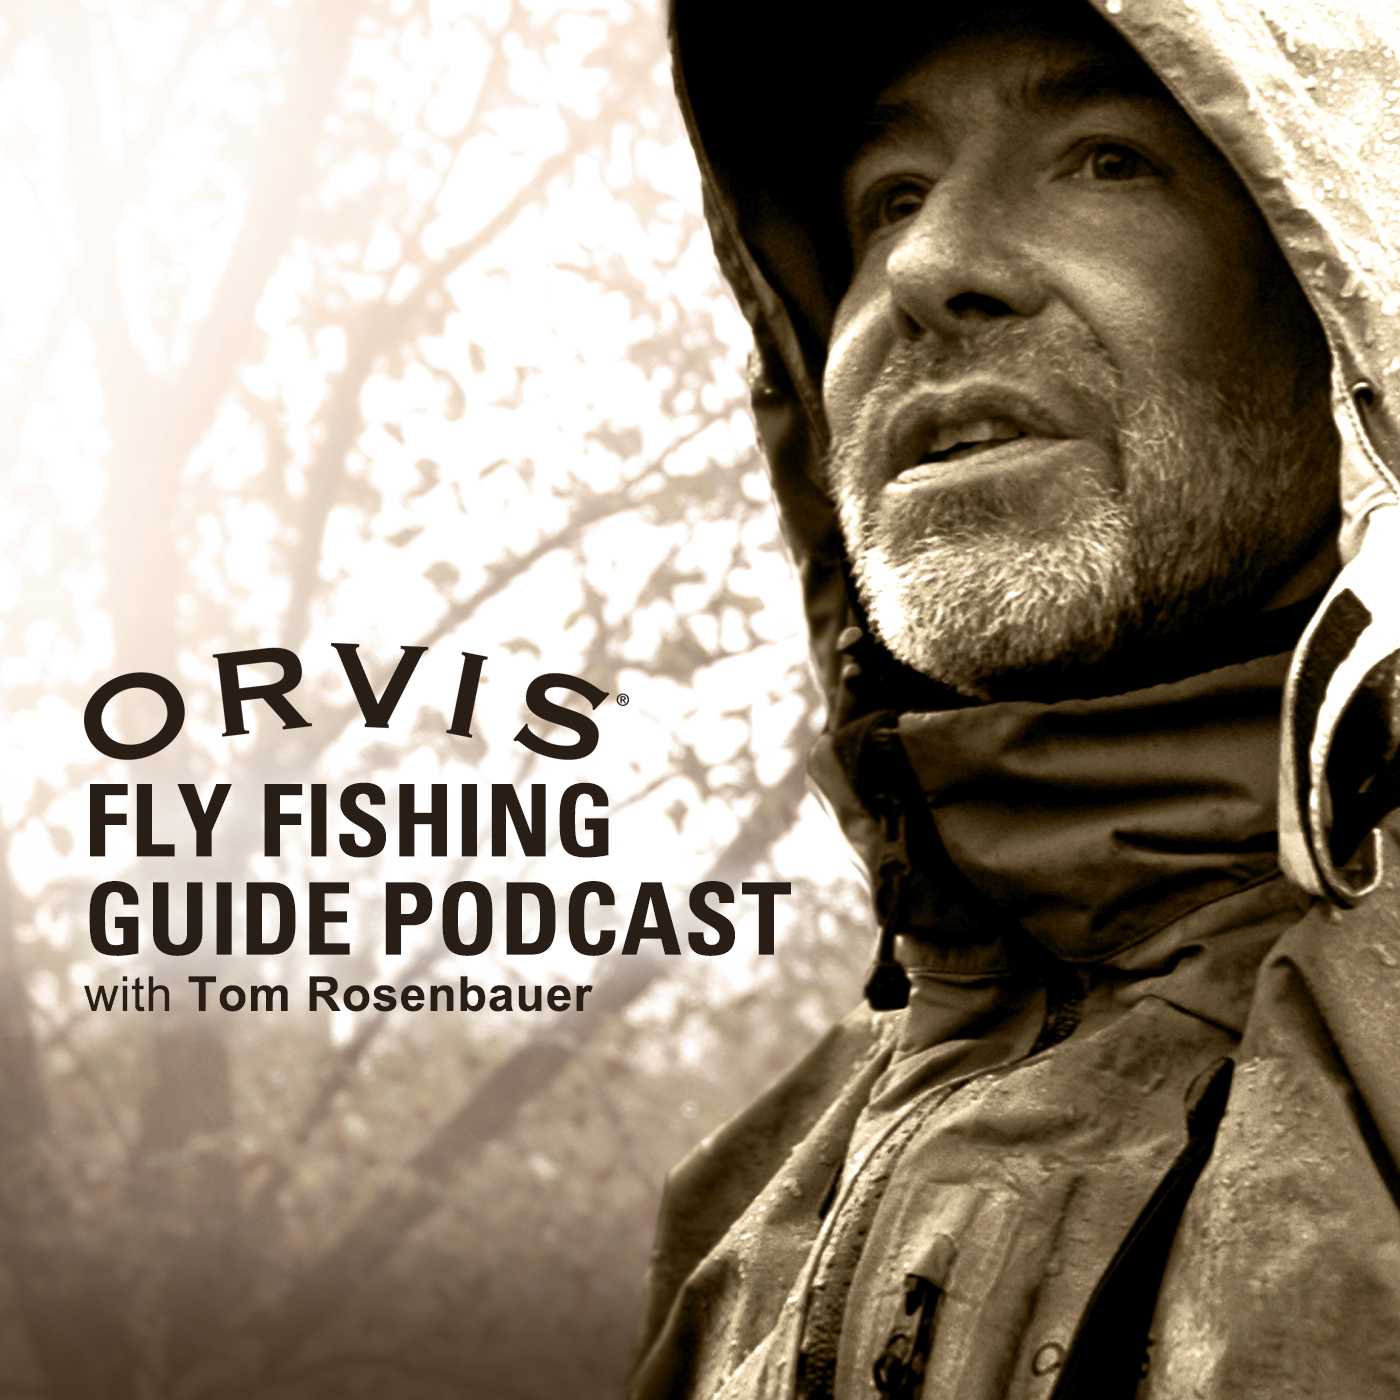 eb25c557d1a The Orvis Fly Fishing Guide Podcast by The Orvis Company on Apple ...